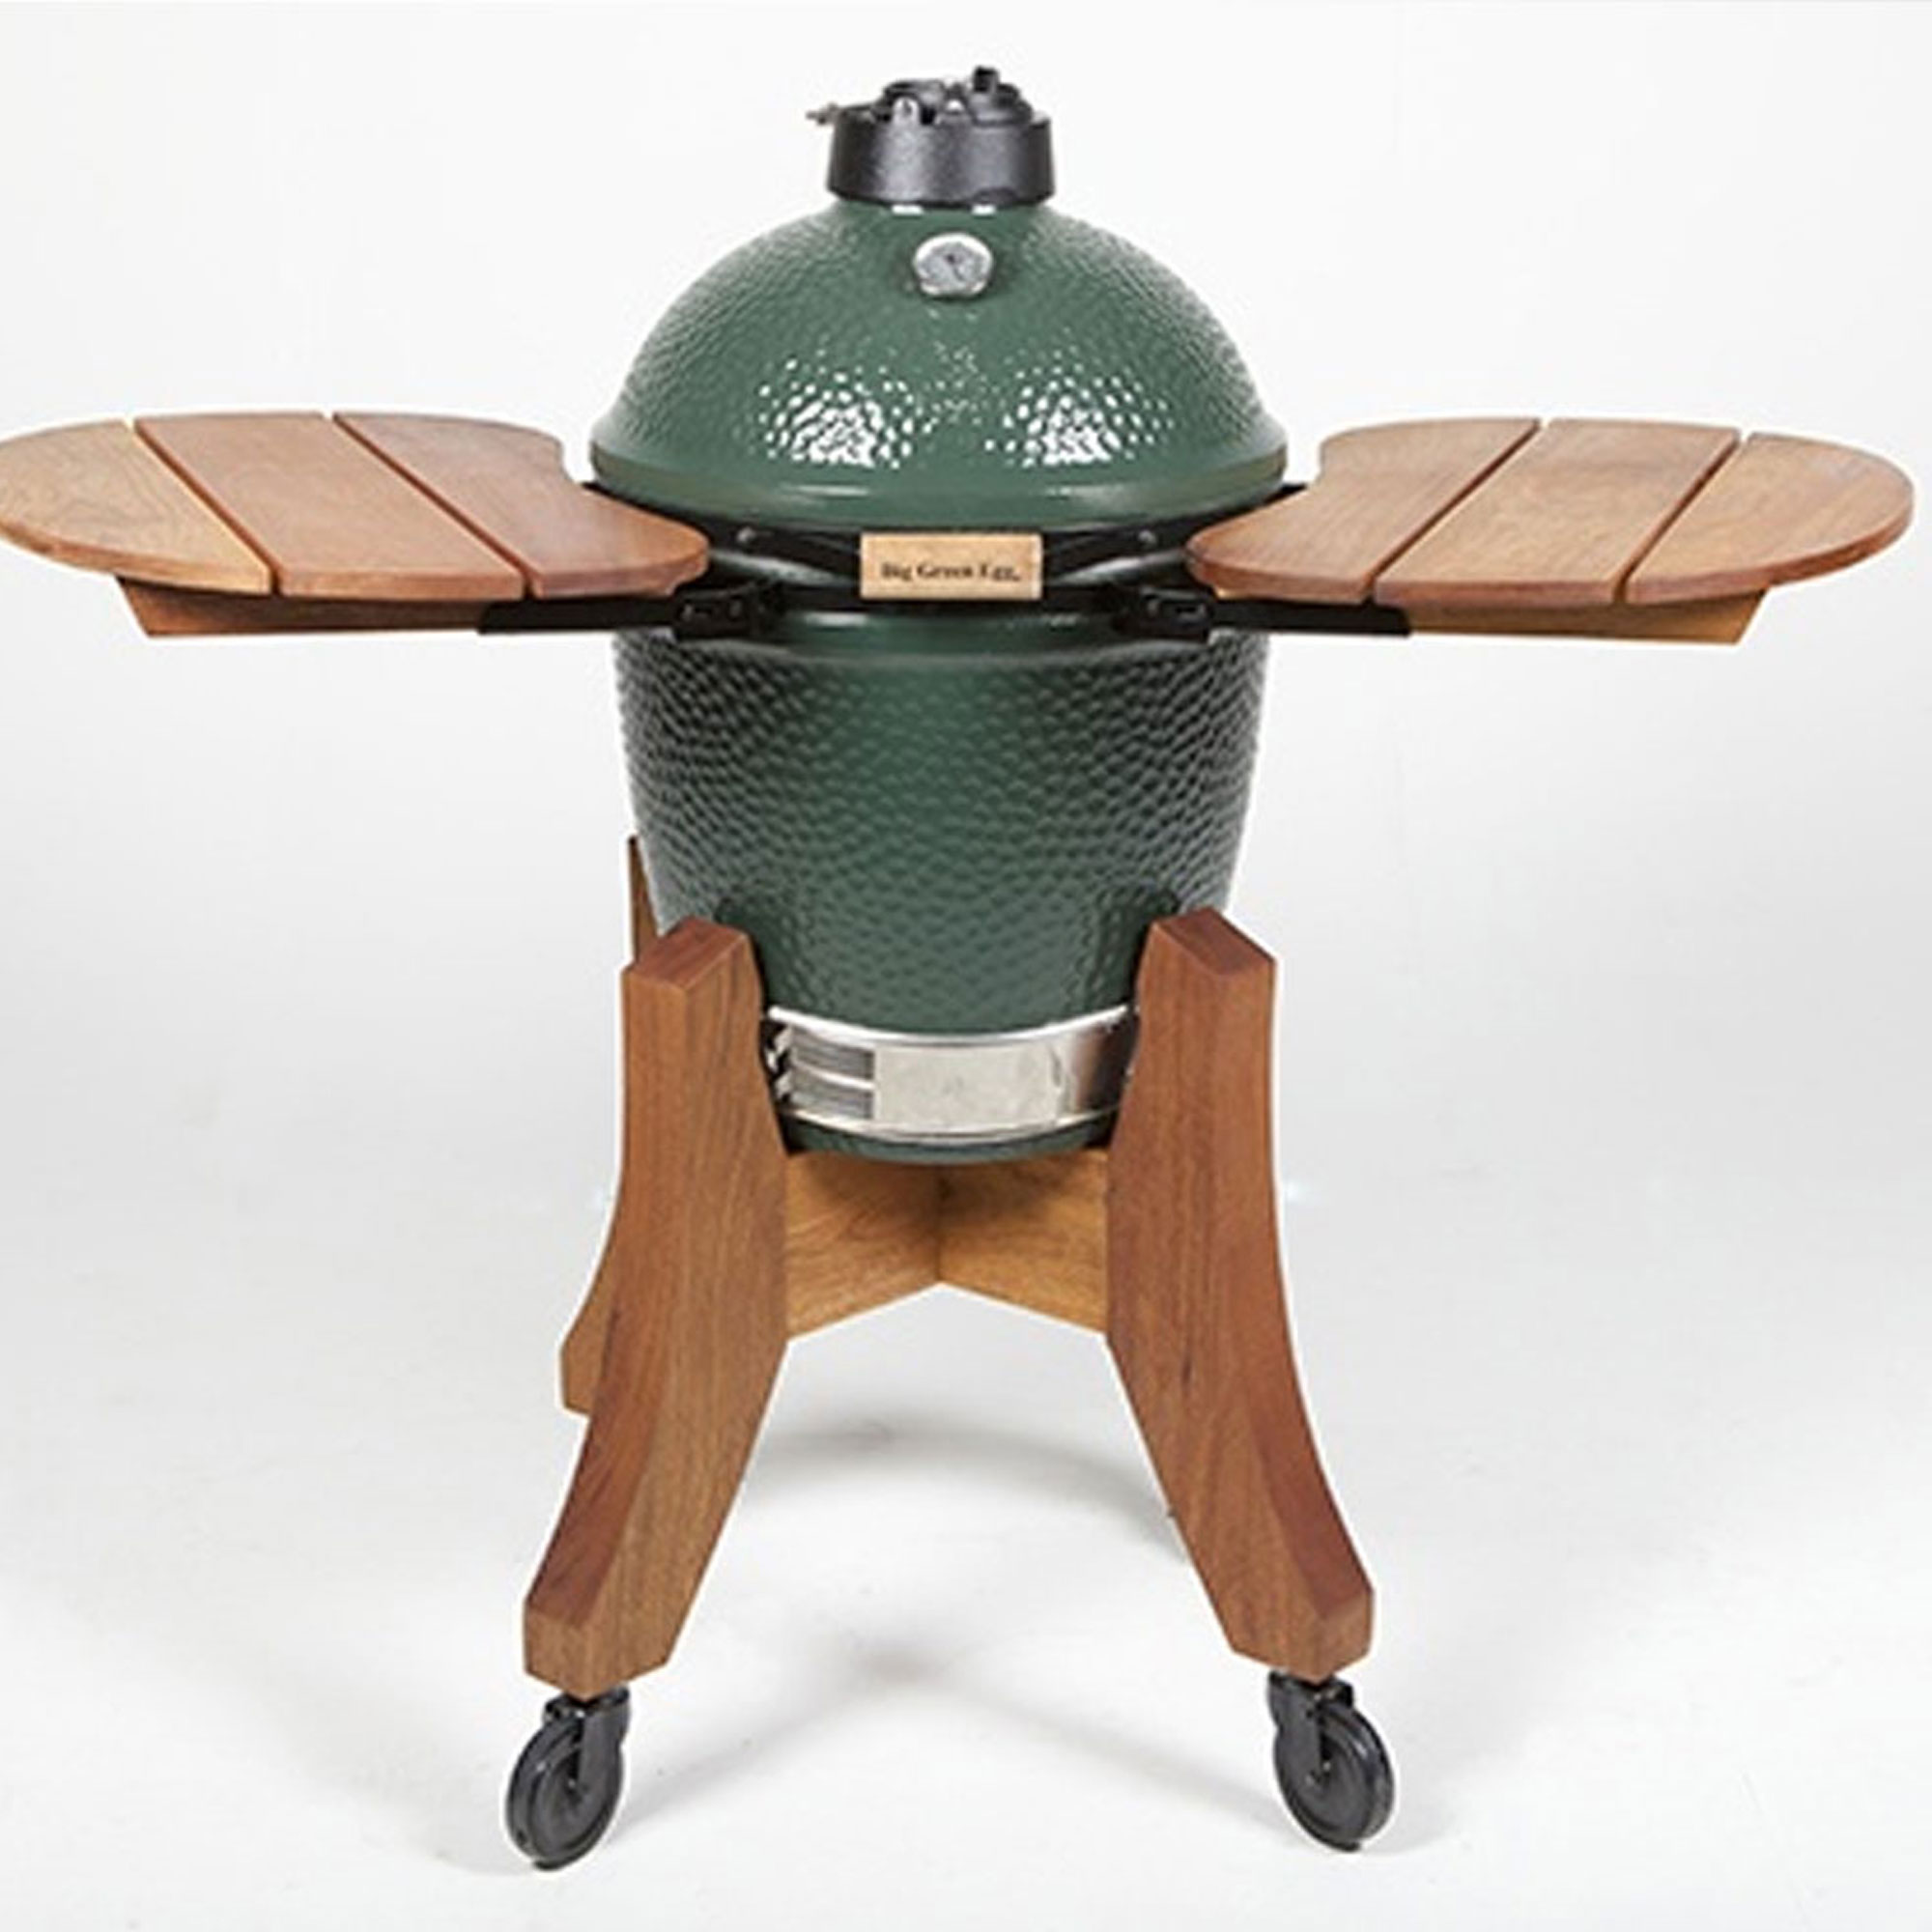 Big Green Egg Outdoor Kitchen: Big Green Egg Royal Mahogany L Shelves